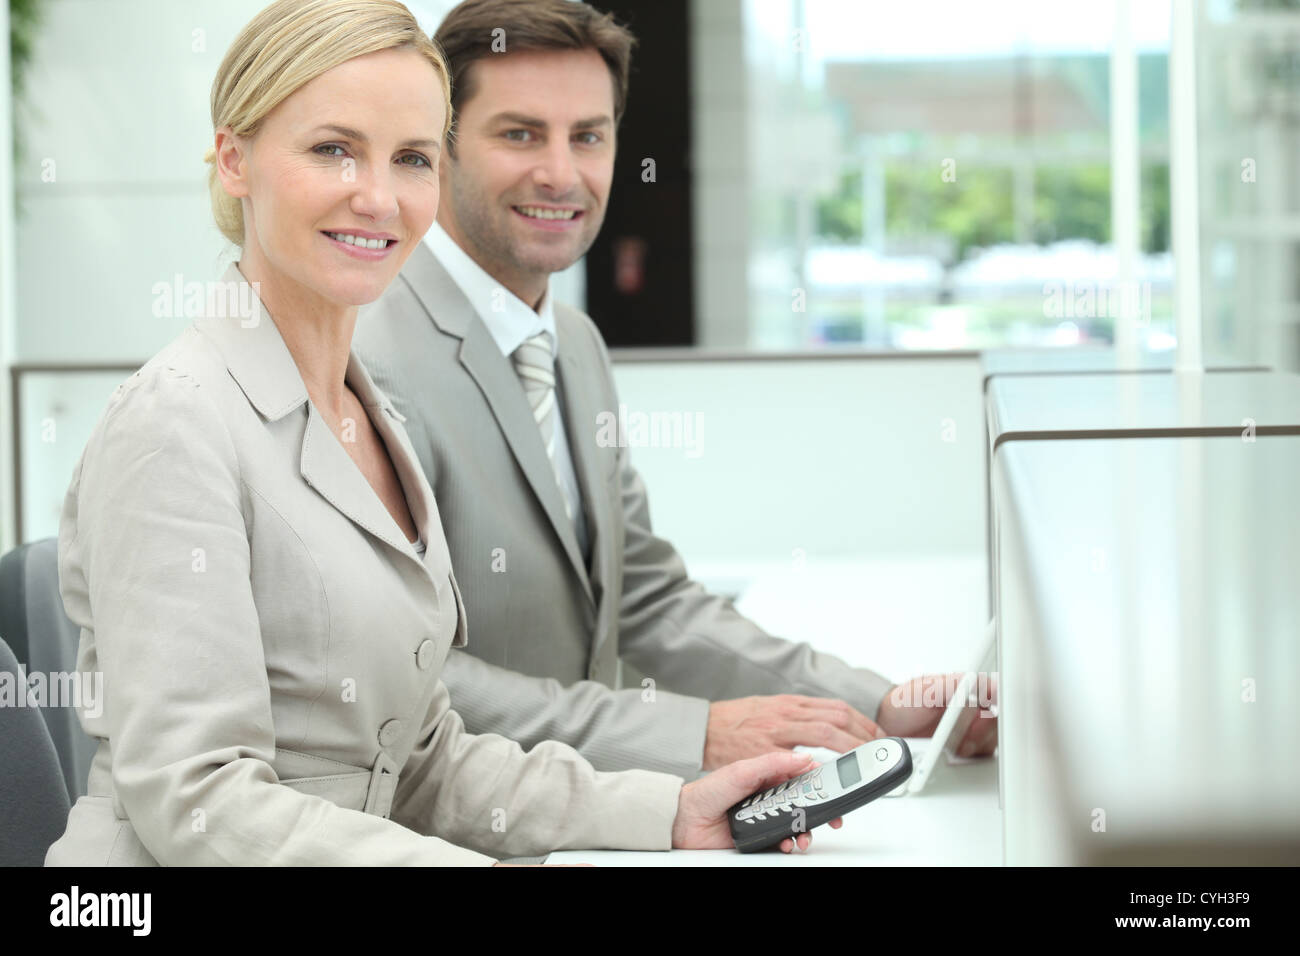 Smiling receptionists - Stock Image